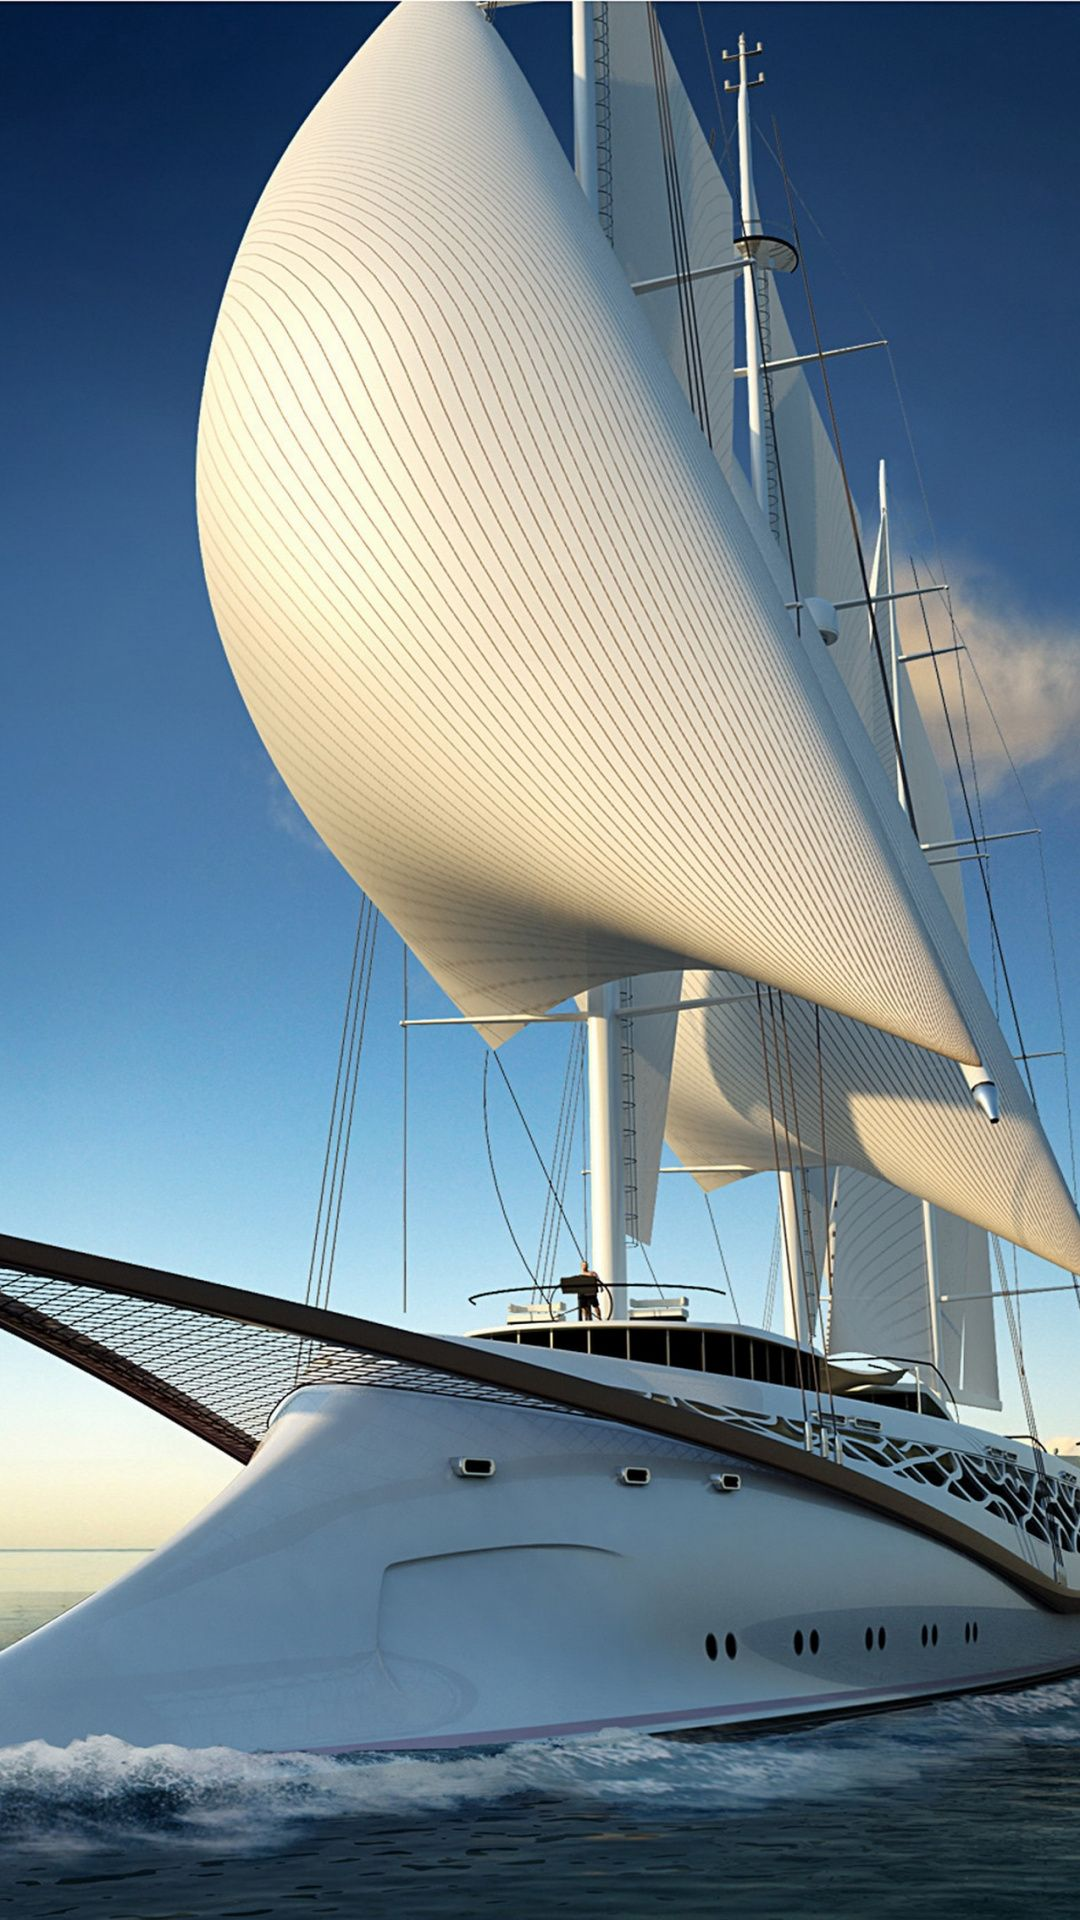 Wallpapers Luxury Yacht Parus Sky Water Transportation Sailing Yacht Sailing Yacht Luxury Yachts Sailing